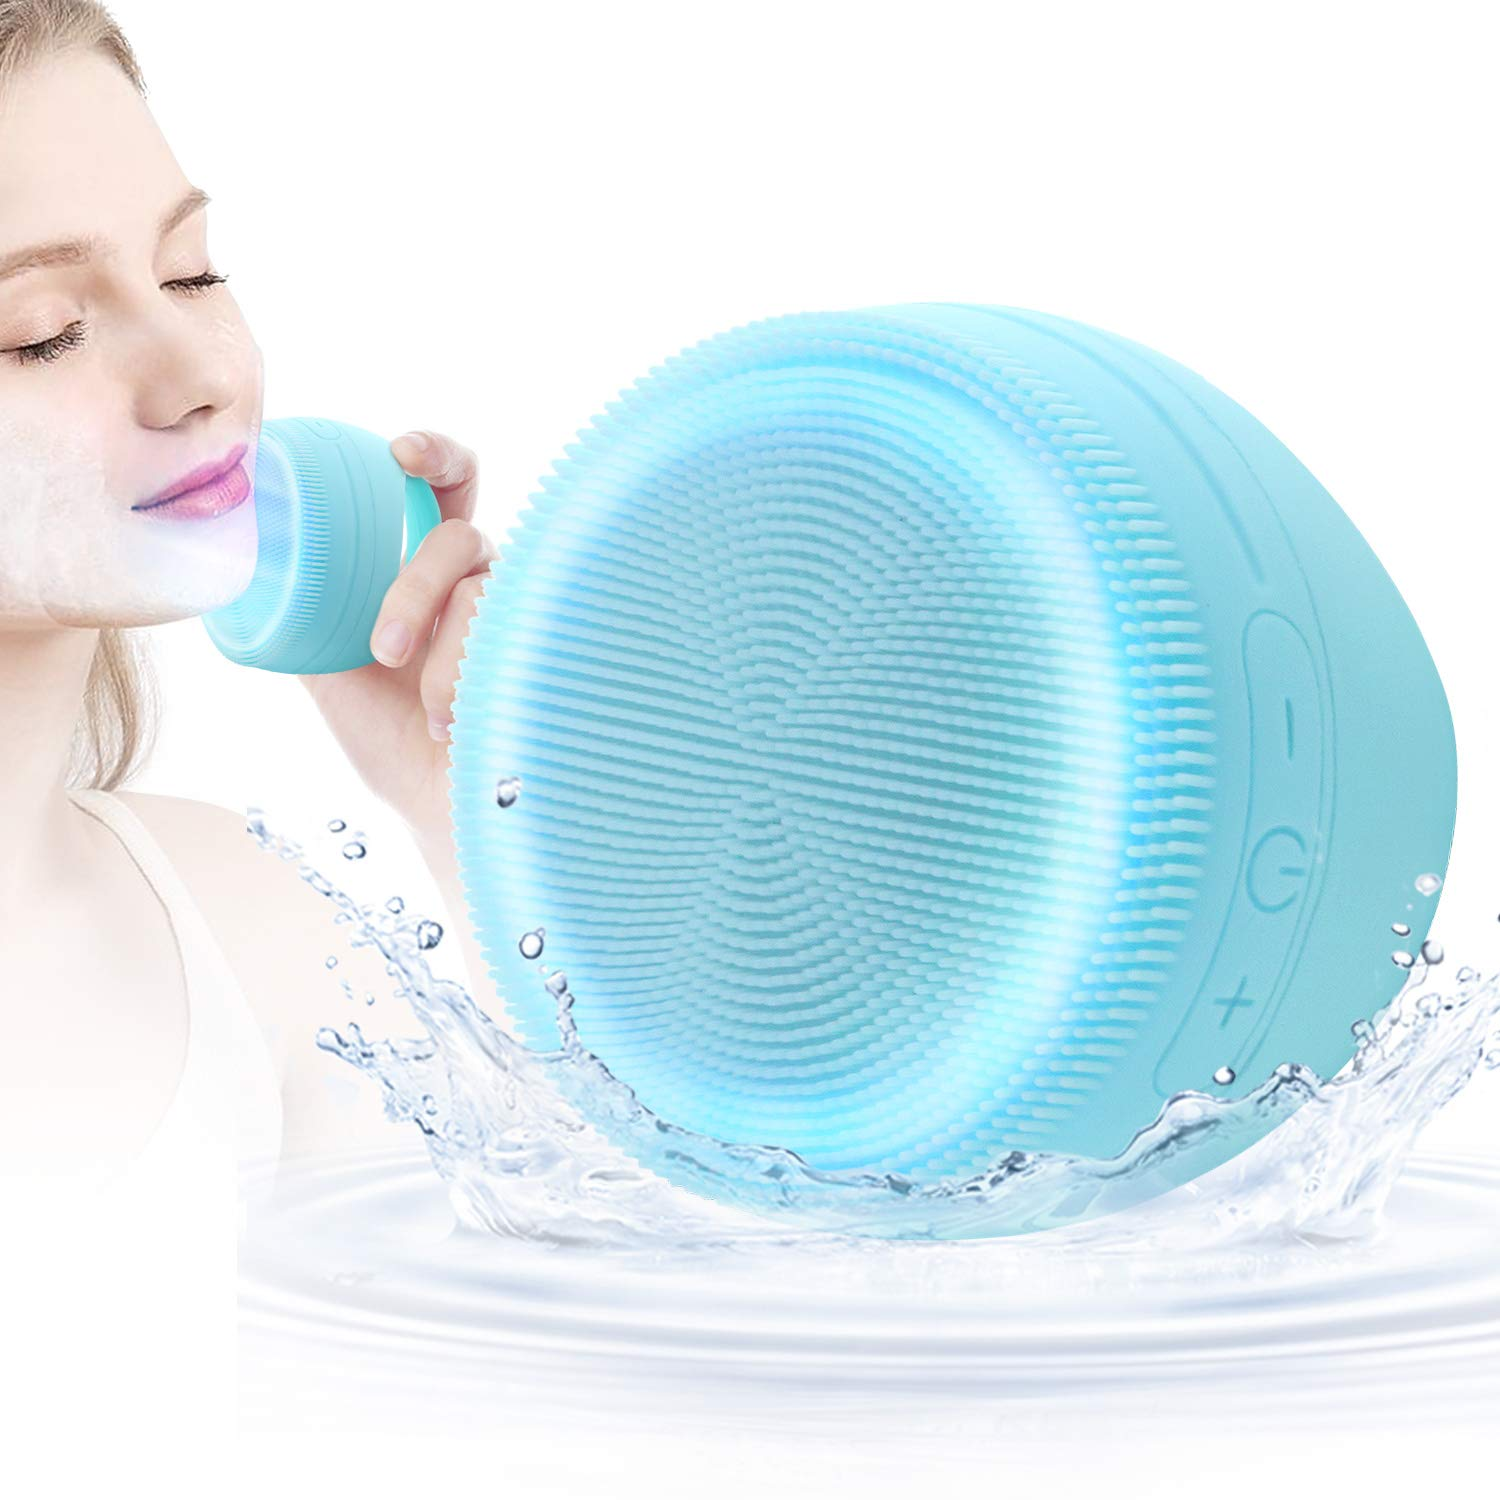 CHITRONIC Sonic Vibrating Facial Cleansing Silicone Brush - 3 Modes, Red/Blue Light Therapy, Non-slip silicone handle, IPX7Waterproof, Smart Timer, Exfoliating and Massaging, Automatic drying Function